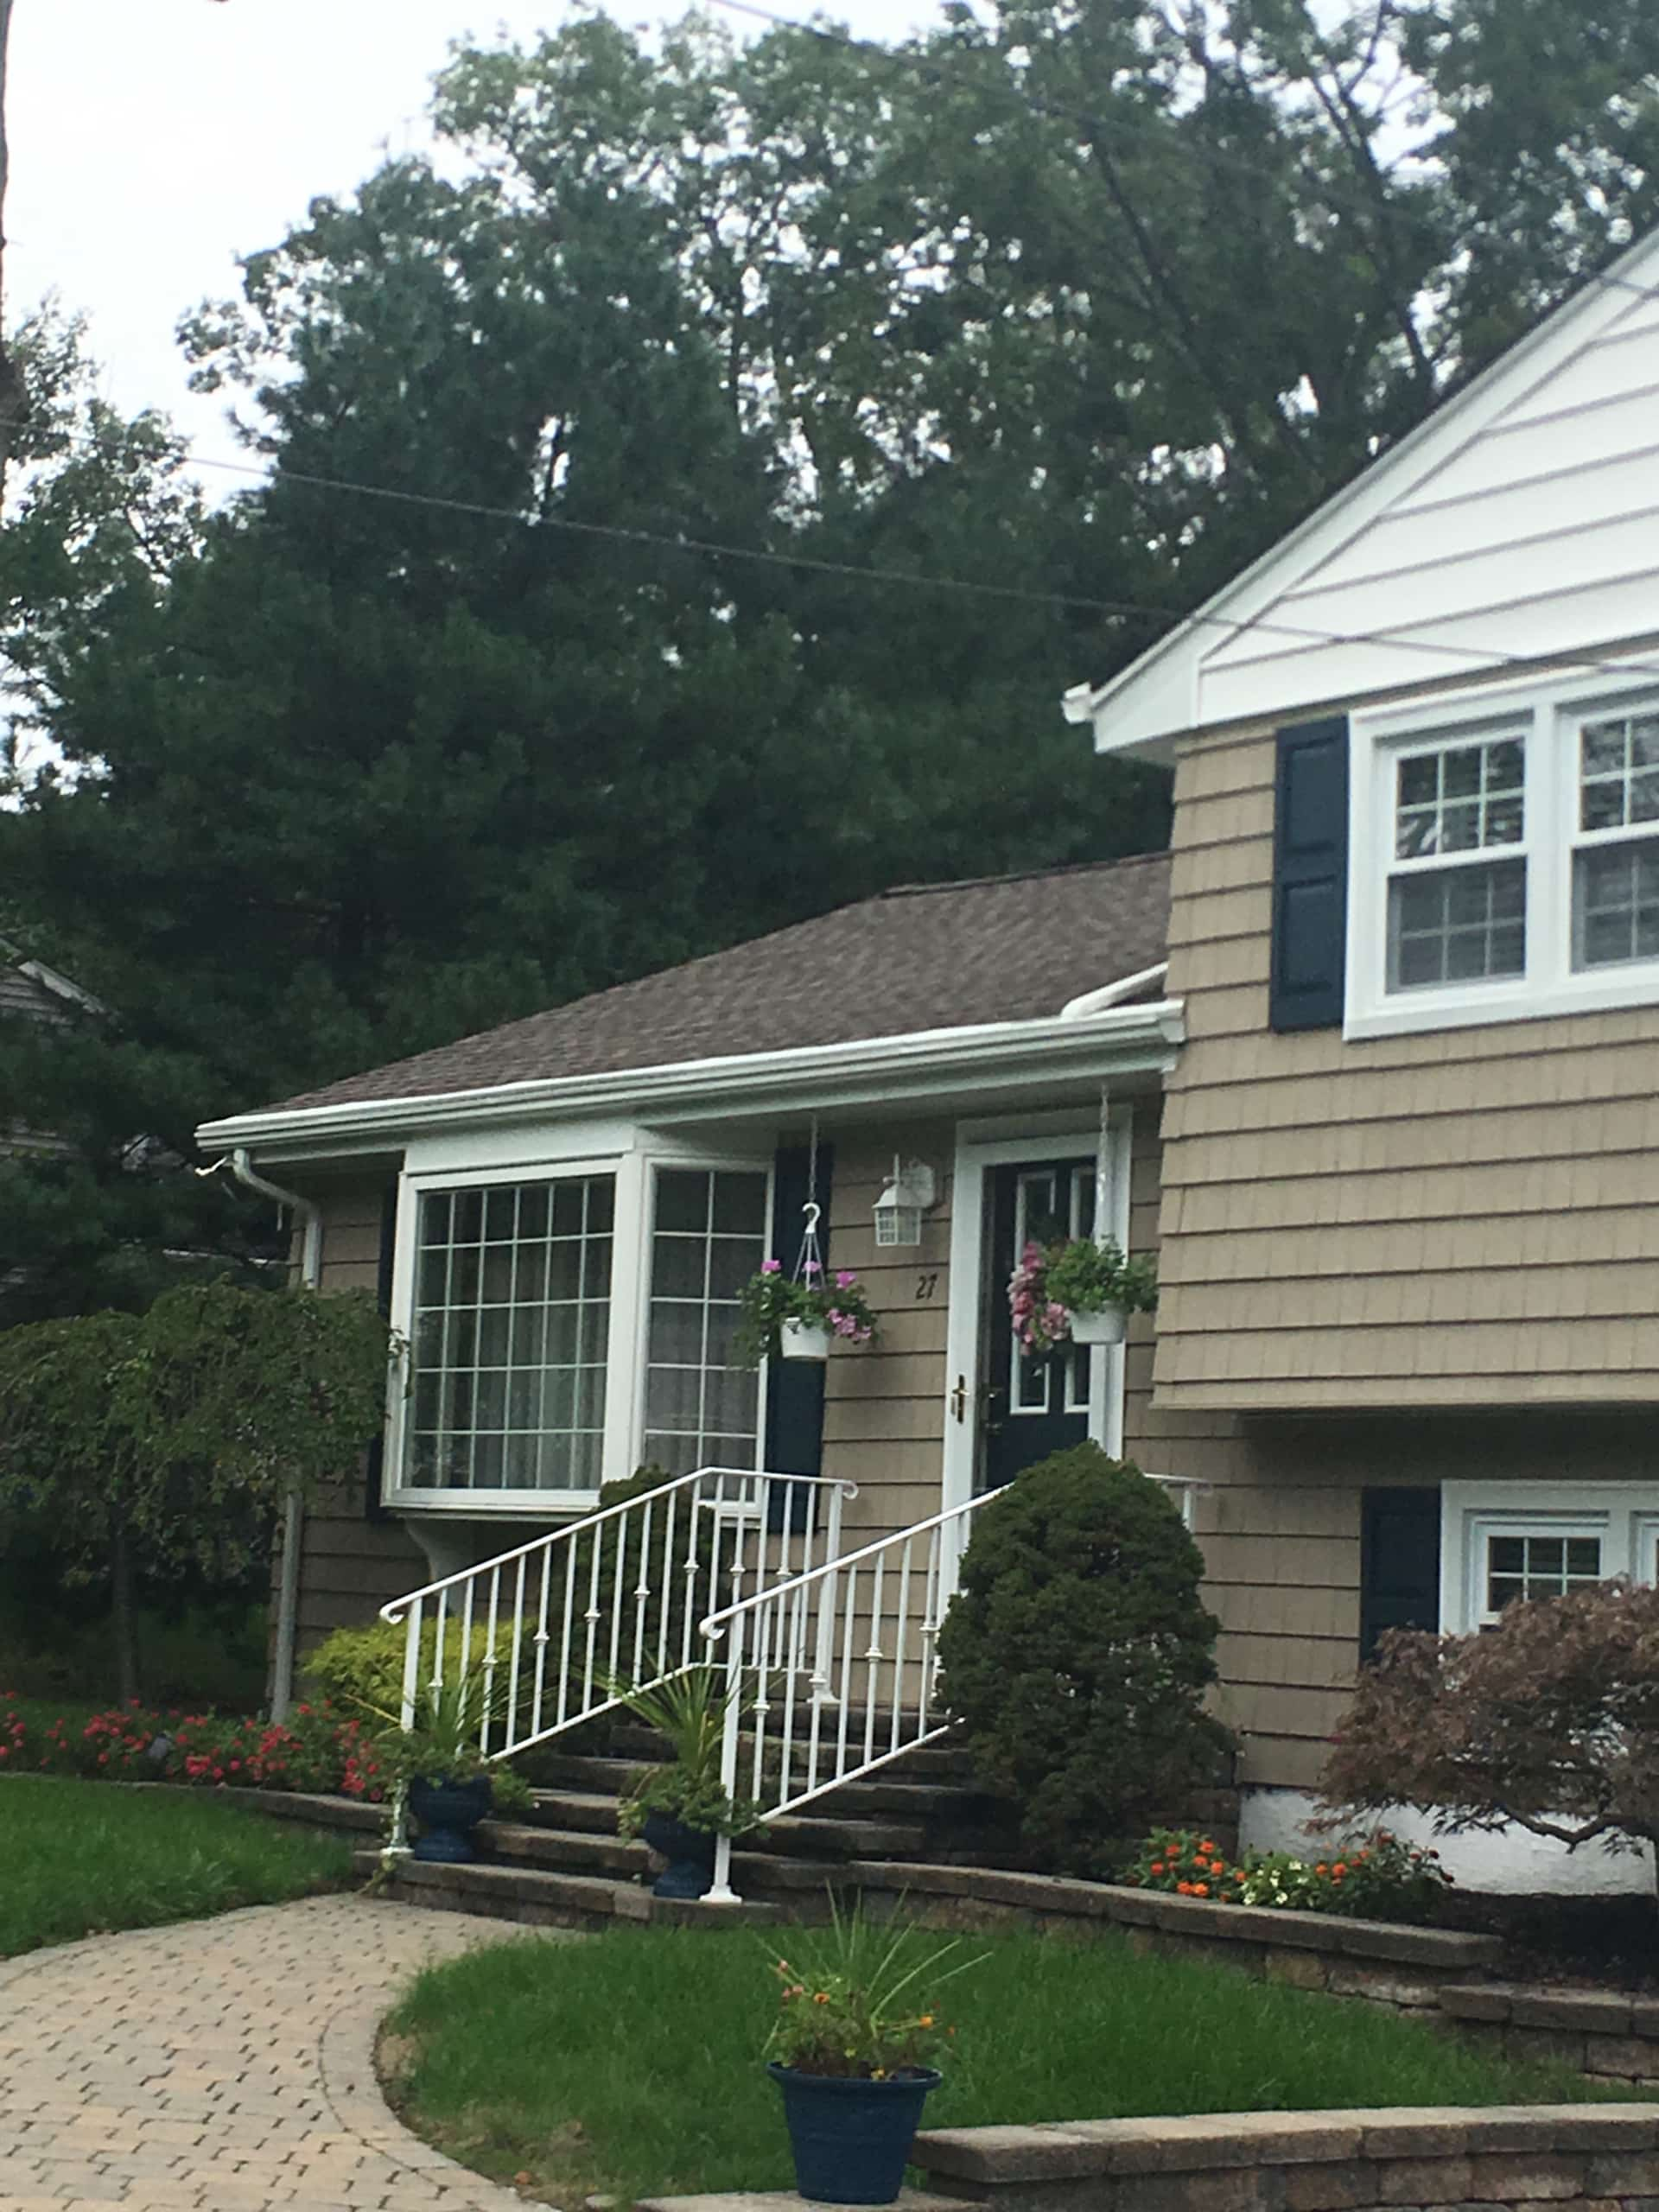 Pearl River Home with Gutter Covers Installed by Superior Seamless Gutters